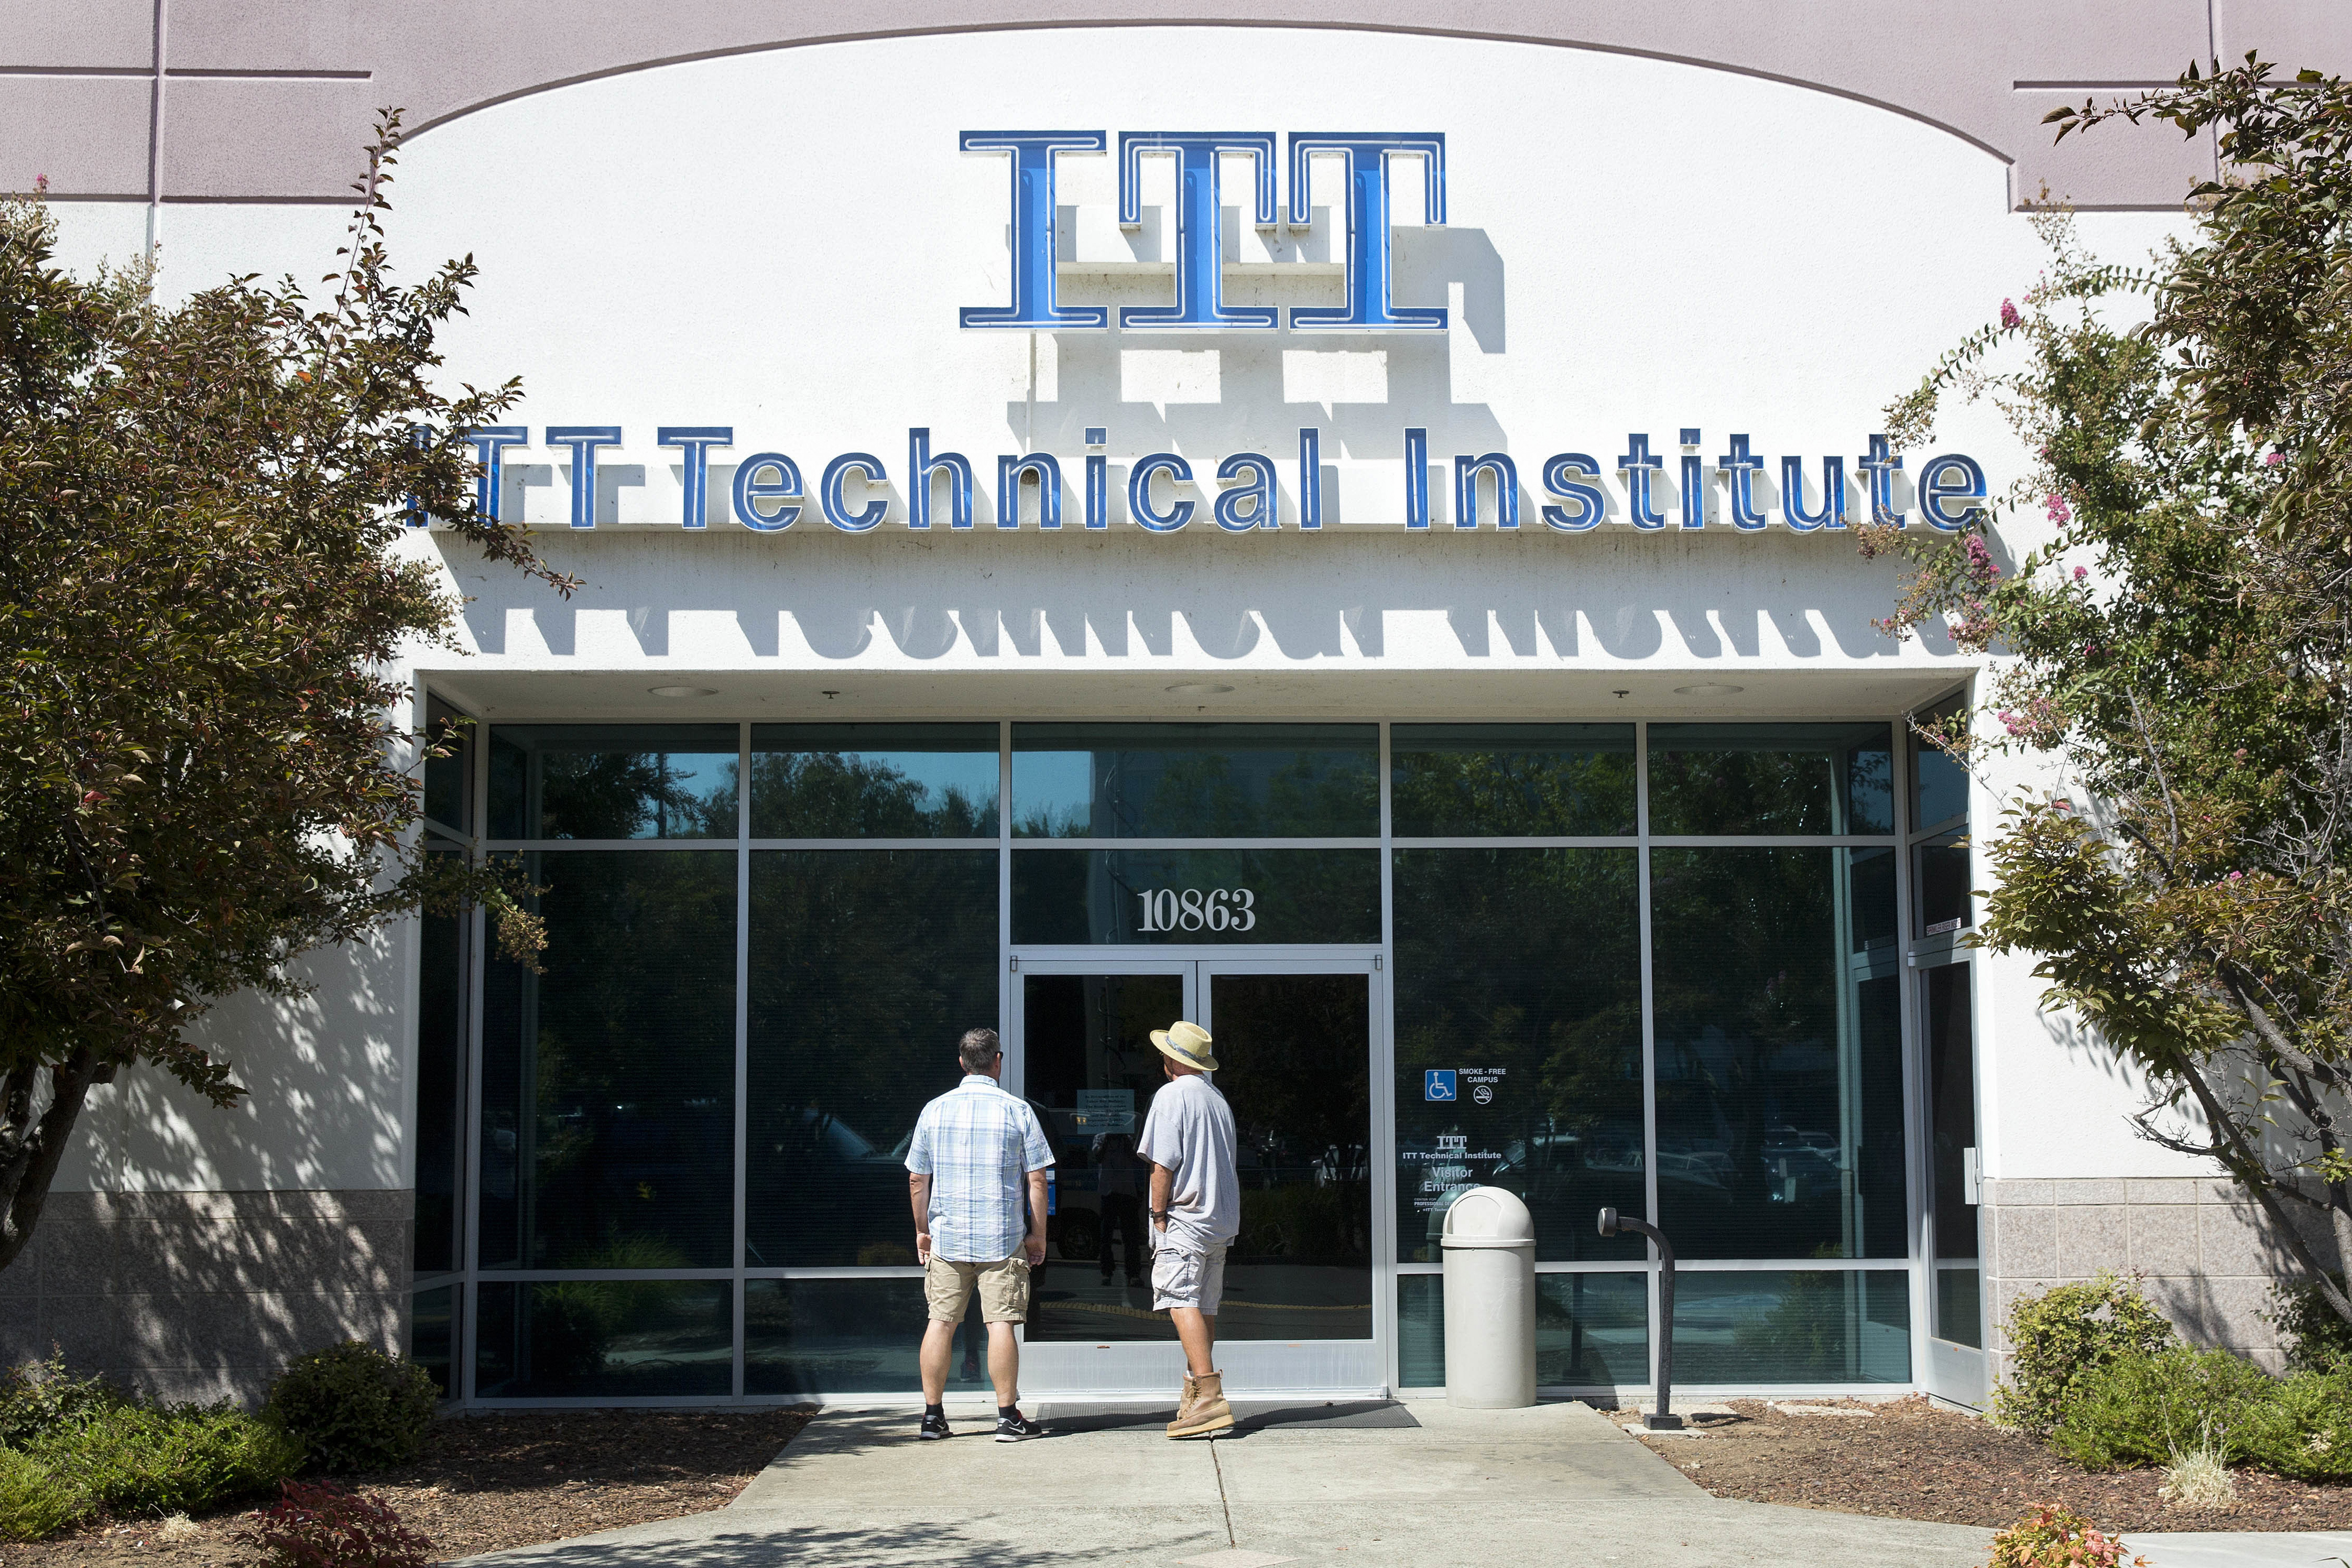 Students find the doors locked to the ITT Technical Institute campus in Rancho Cordova, Calif.